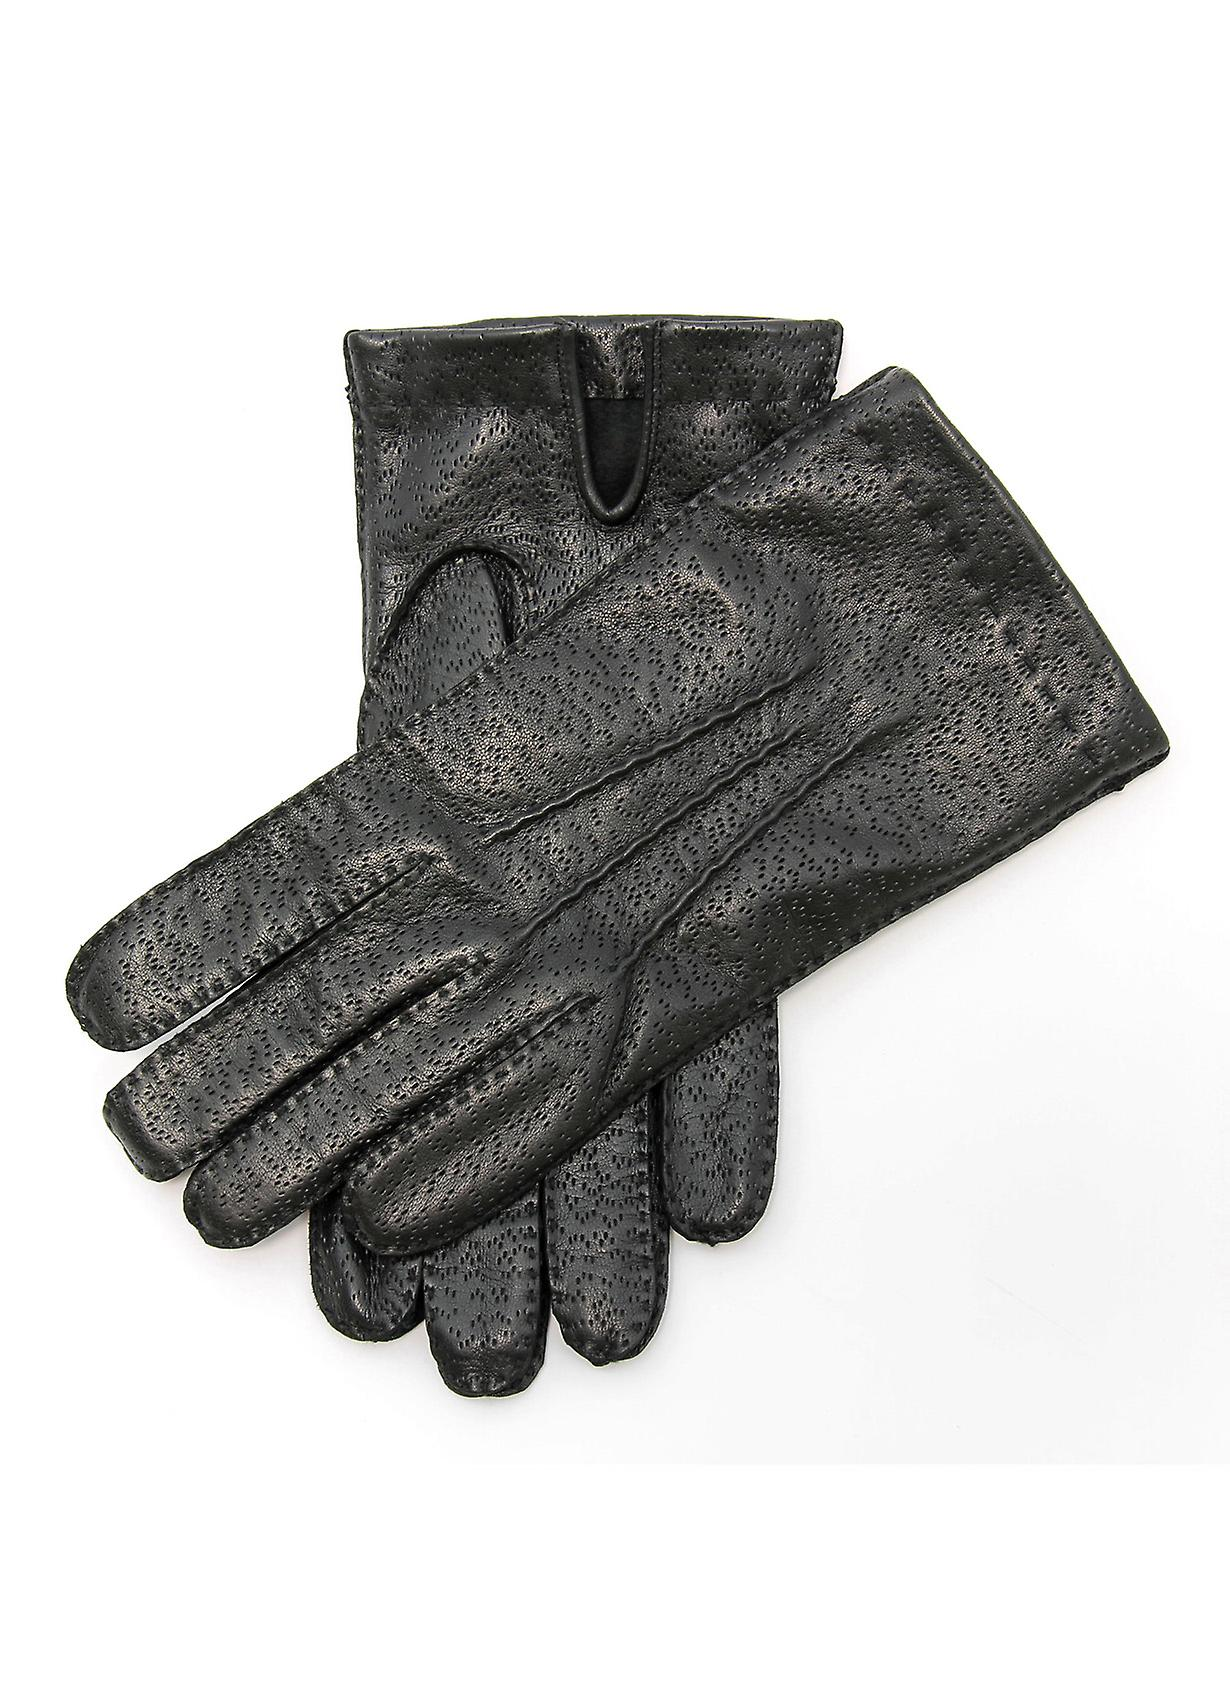 Phil II Classic Handsewn Leather Gloves in Black